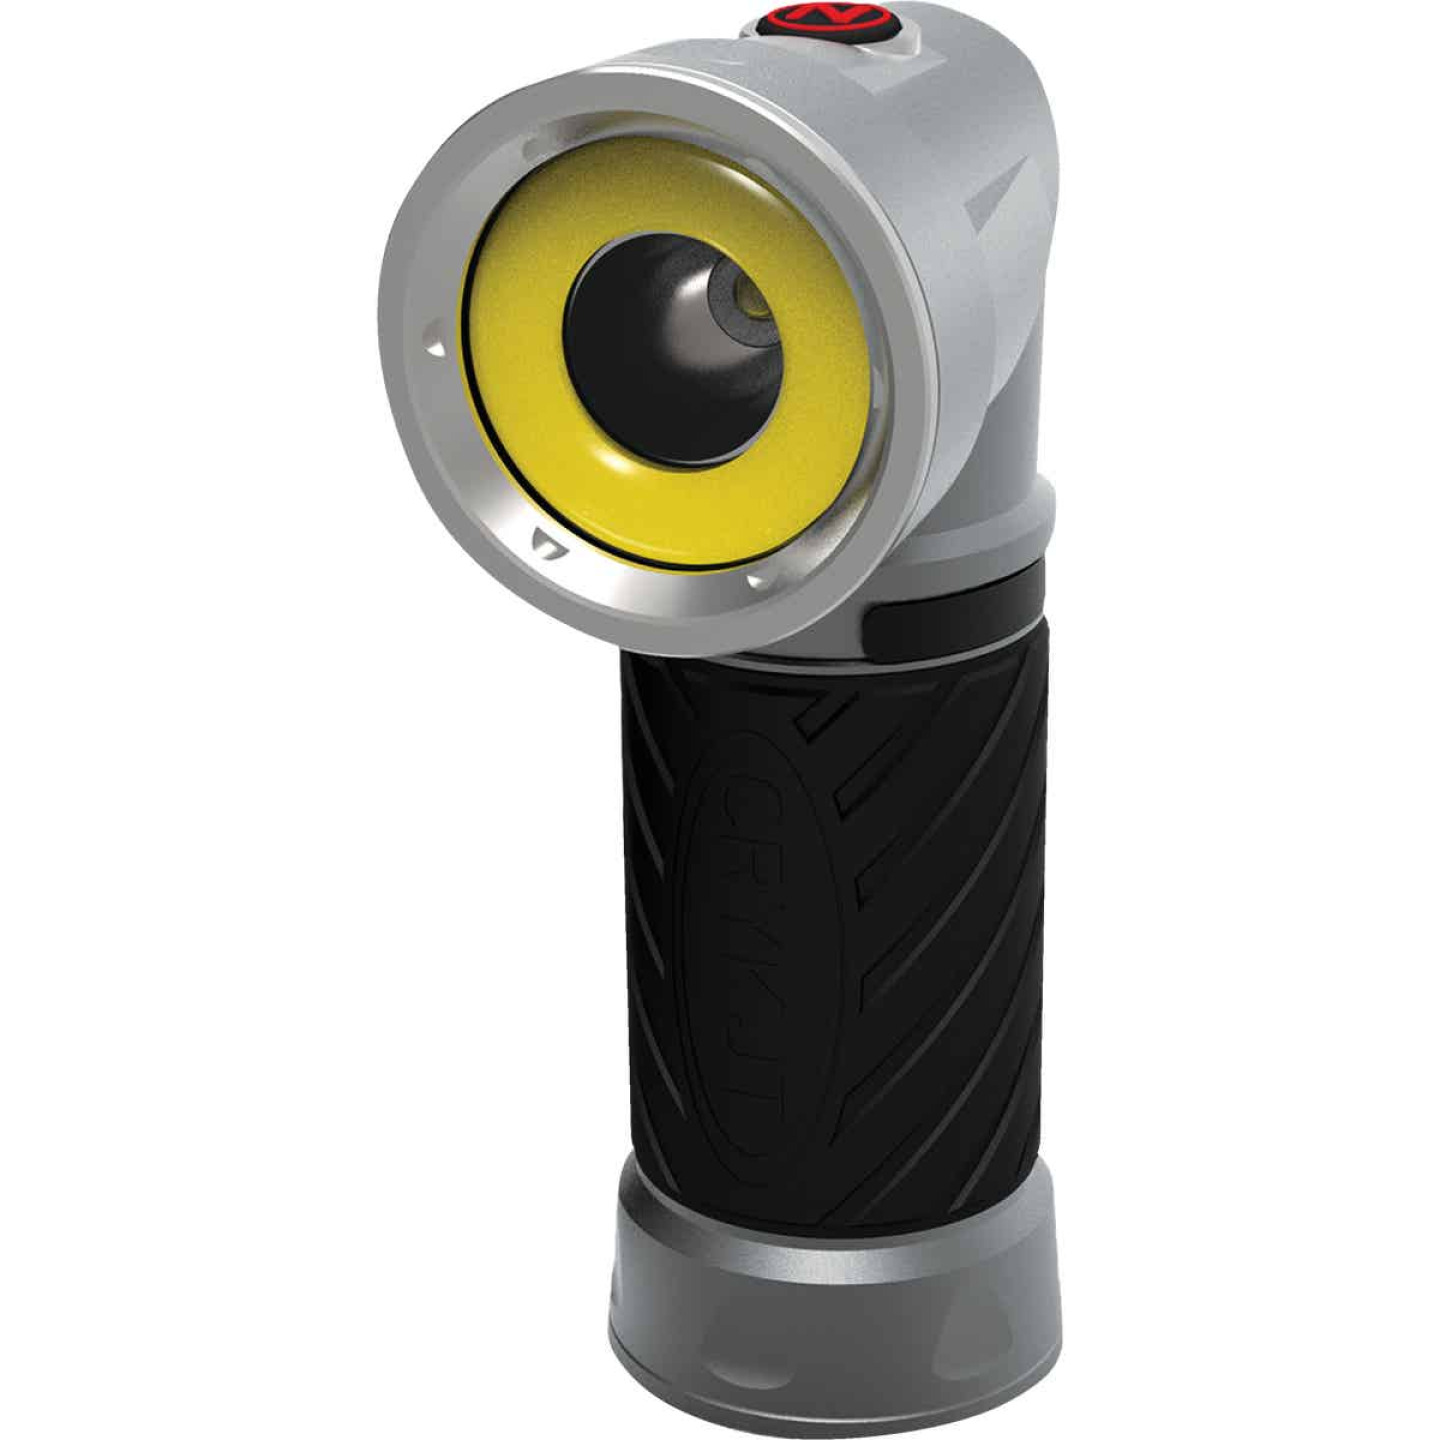 Nebo Cryket 4AAA LED 3-In-1 Flashlight Image 1